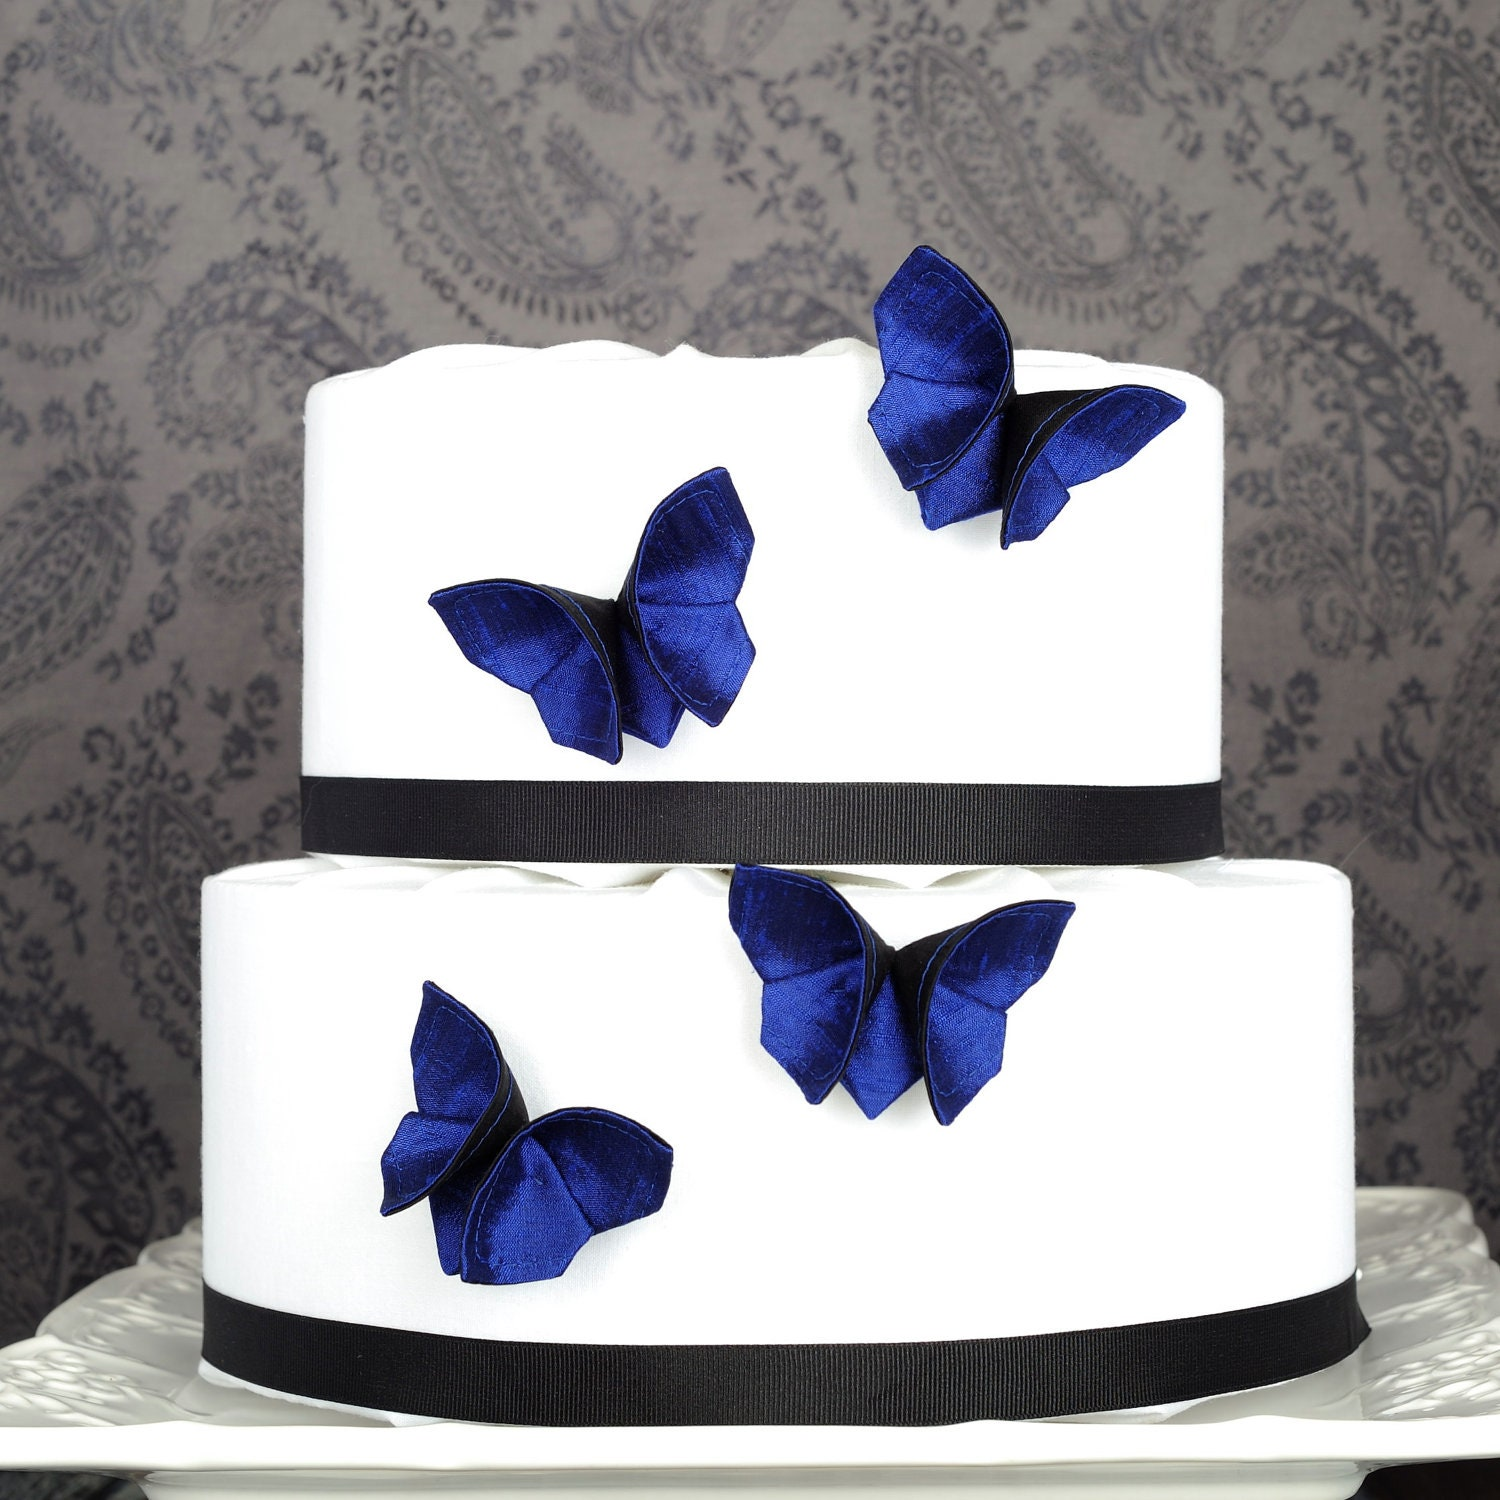 Etsy Cake Decorations : Items similar to Butterfly Wedding Cake Decorations SET OF ...